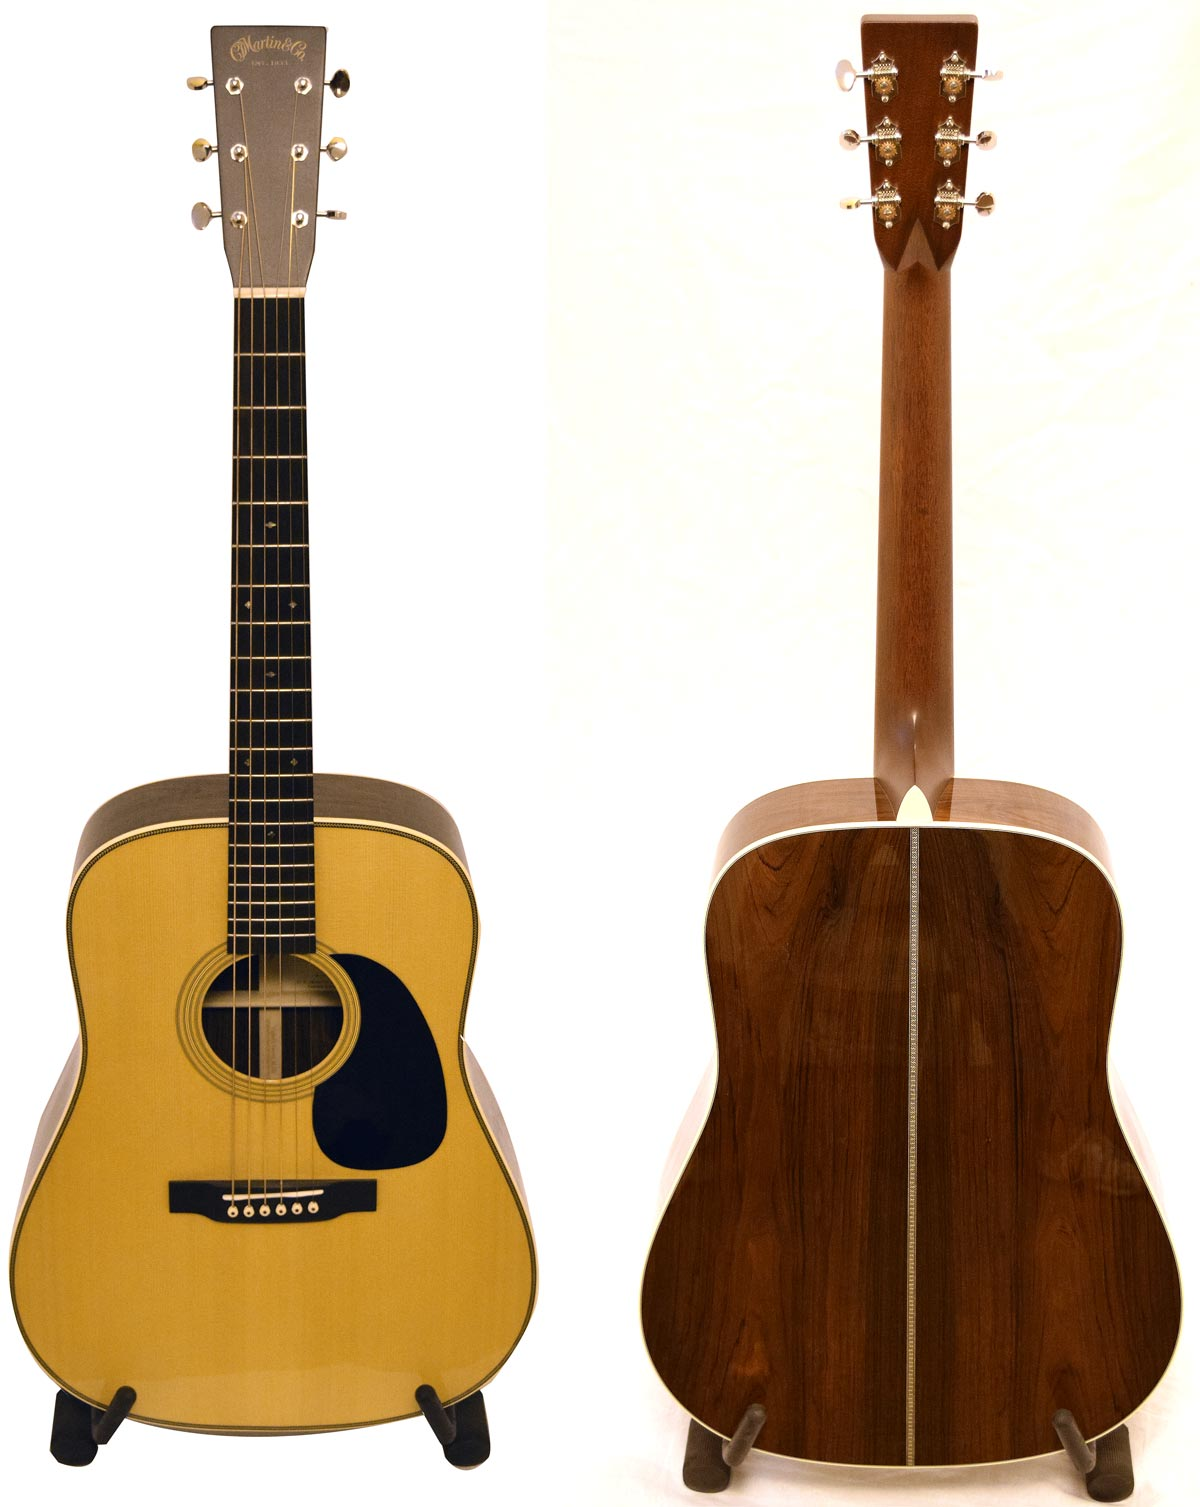 MartinD-28 Brazilian, Special Edition Acoustic Guita